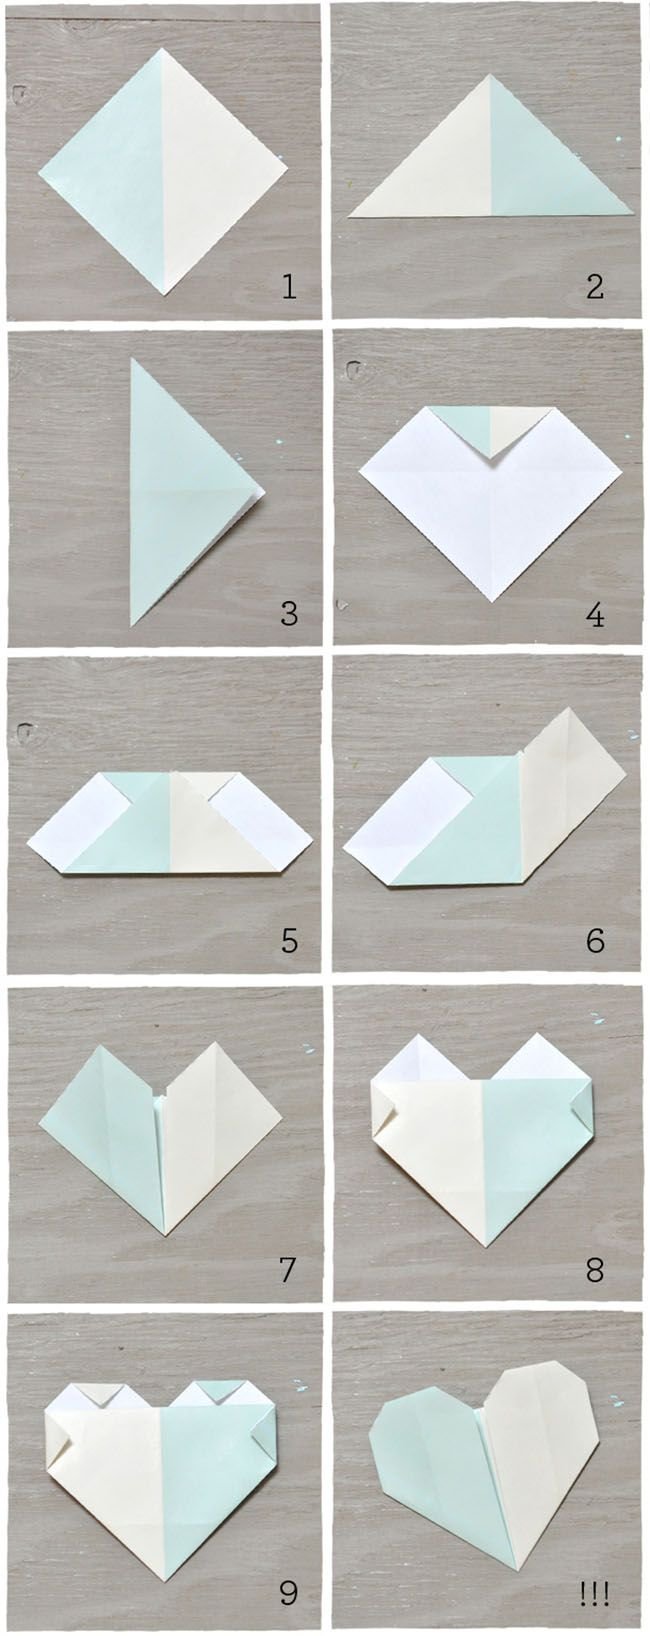 Easy Origami Heart Now Make It Into An Ornament Glue On A Skewer For Cake Topper String Several Together Banner Or Garland